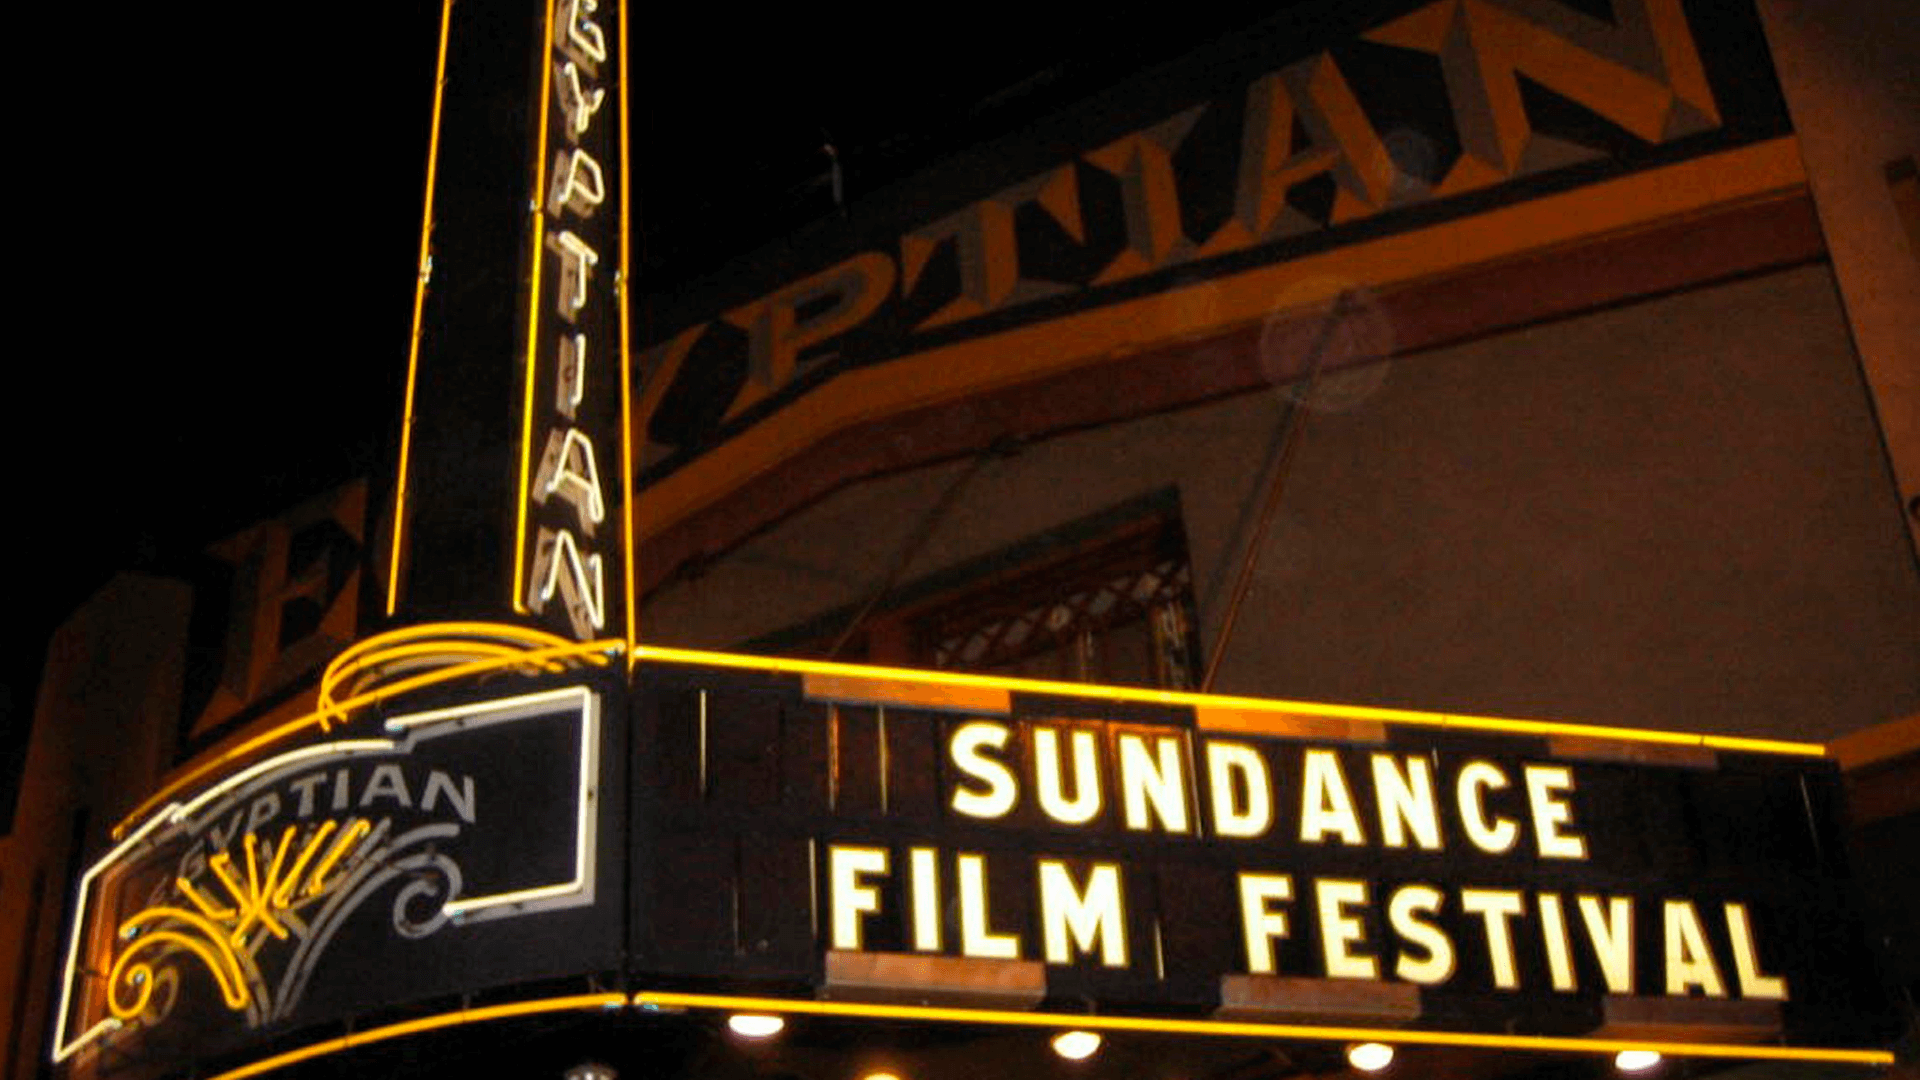 Sundance Film Festival Adds a Touch of VR